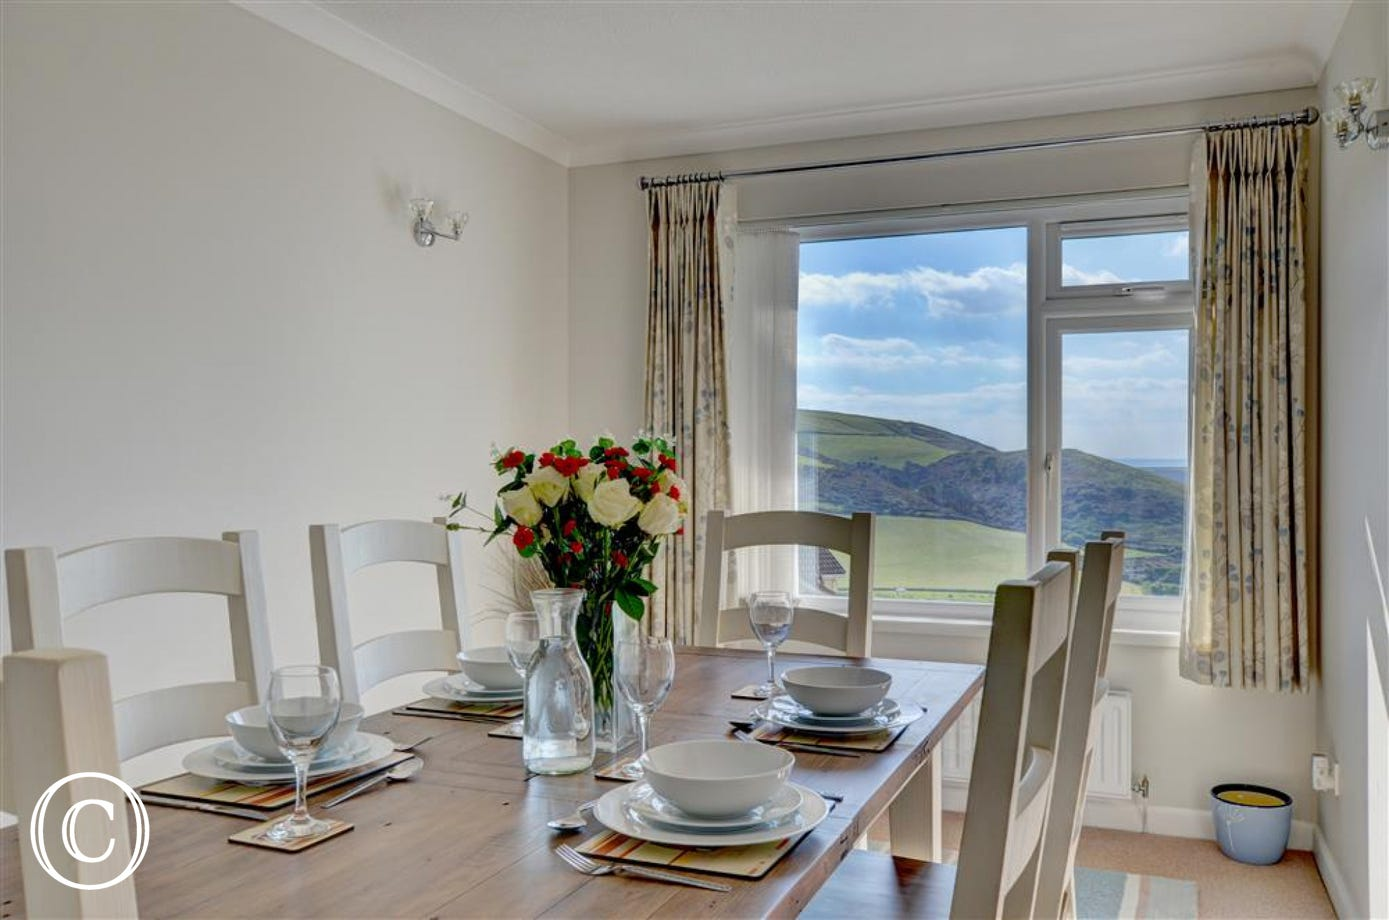 The property benefits from a separate dining room with awe inspiring views